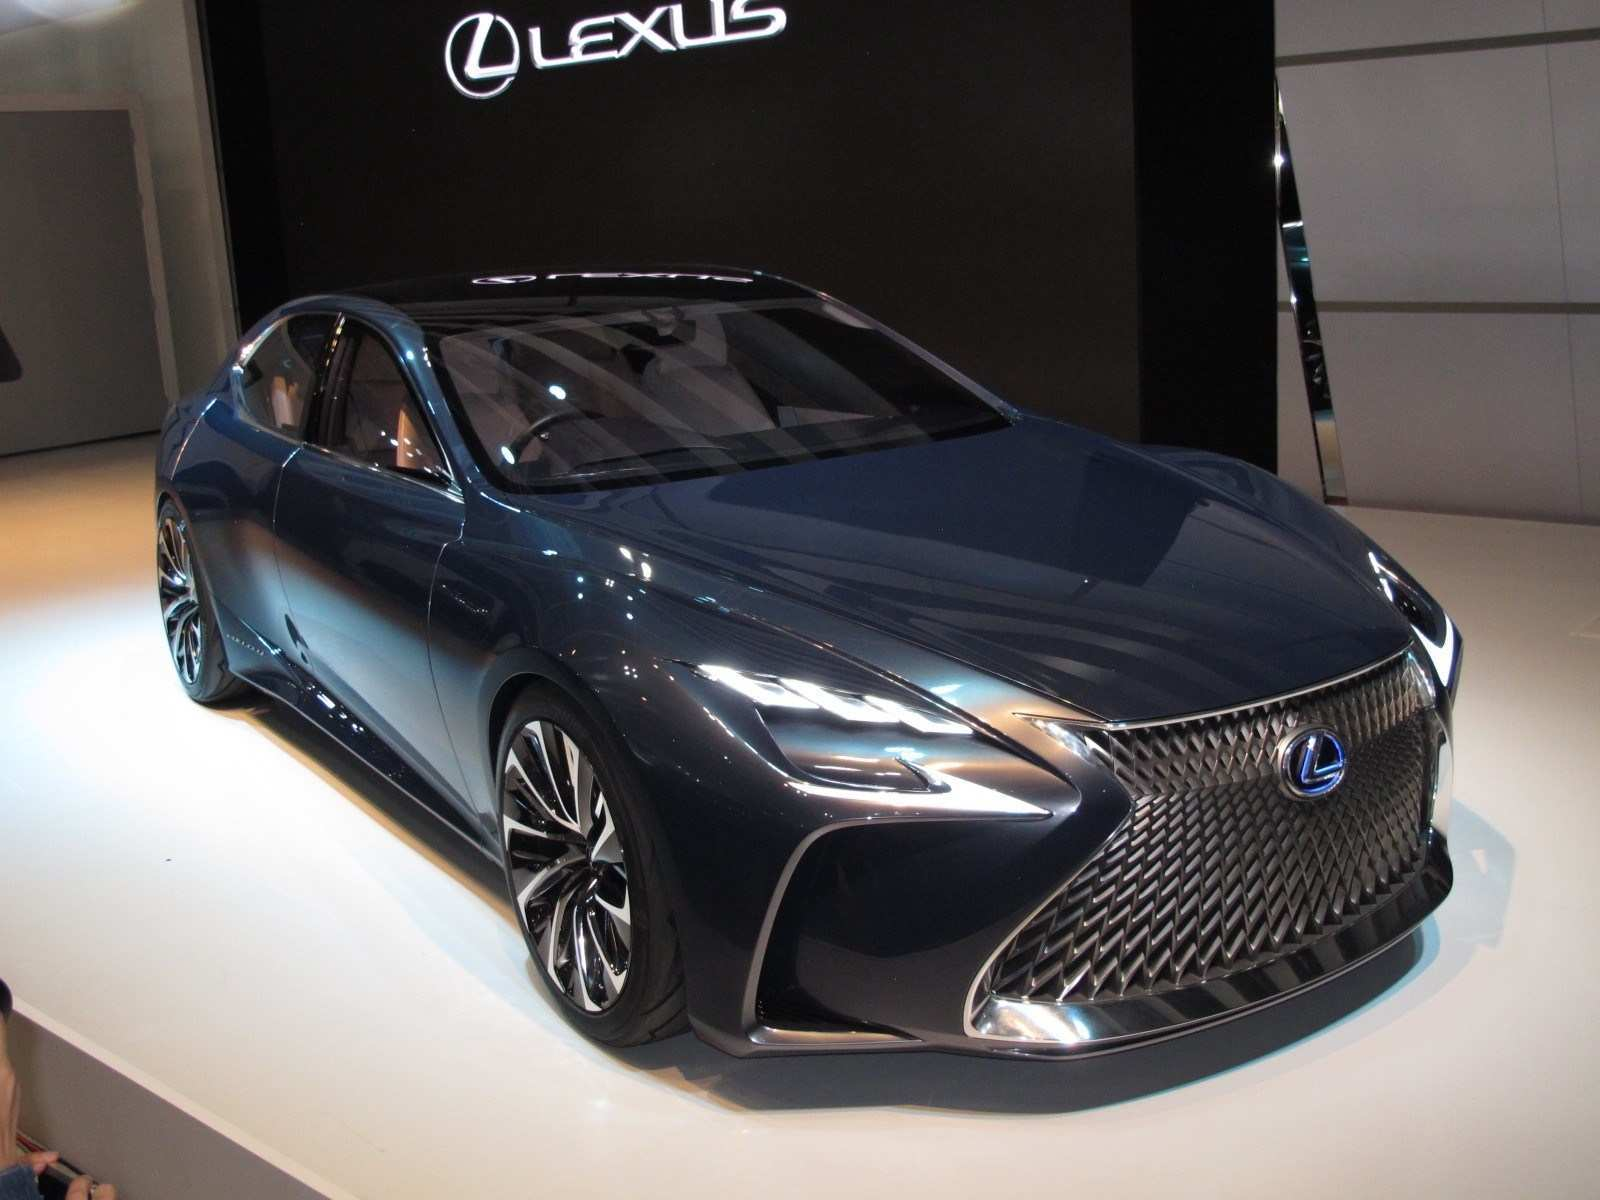 64 Concept of 2020 Lexus LSs Exterior and Interior by 2020 Lexus LSs